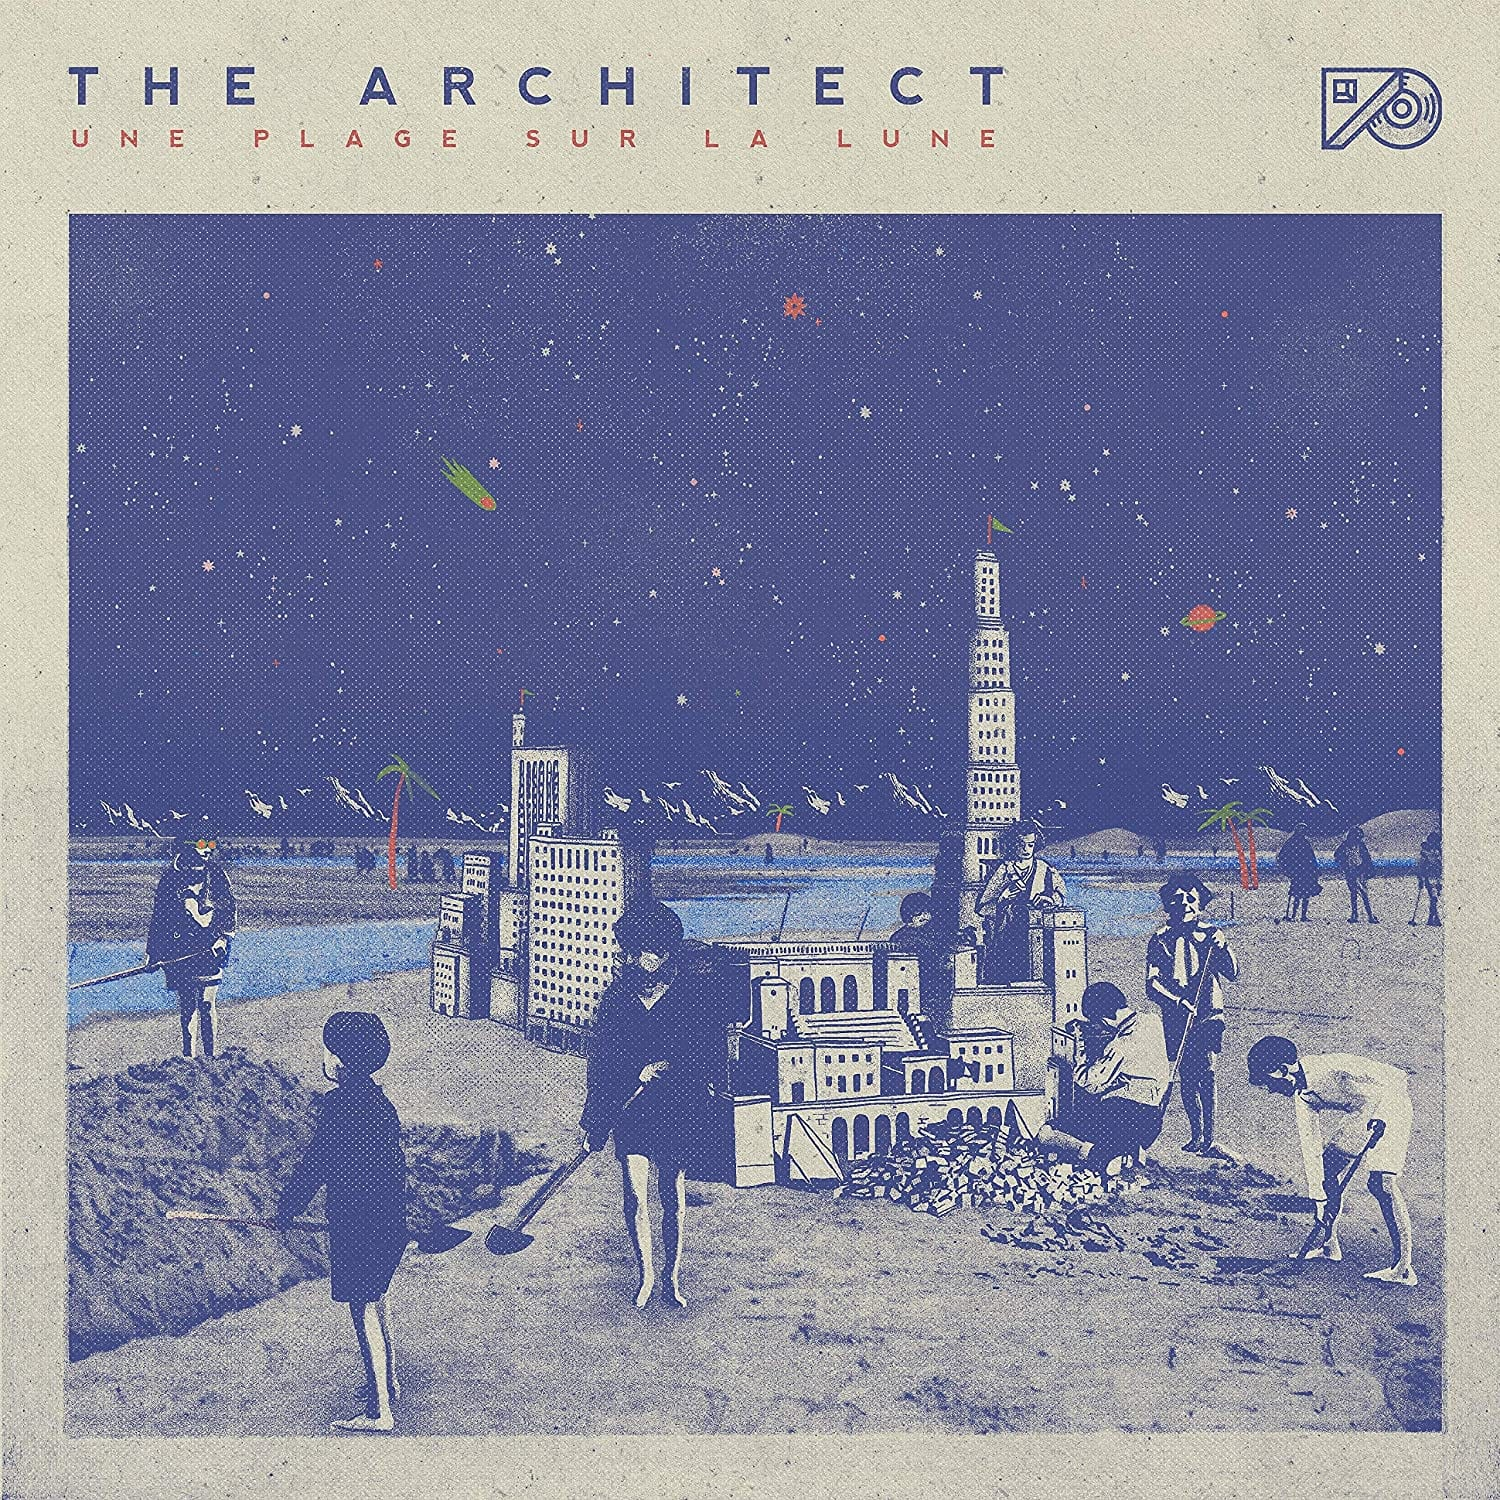 Architect - Une Plage Sur La Lune [LP] (import) - Urban Vinyl | Records, Headphones, and more.